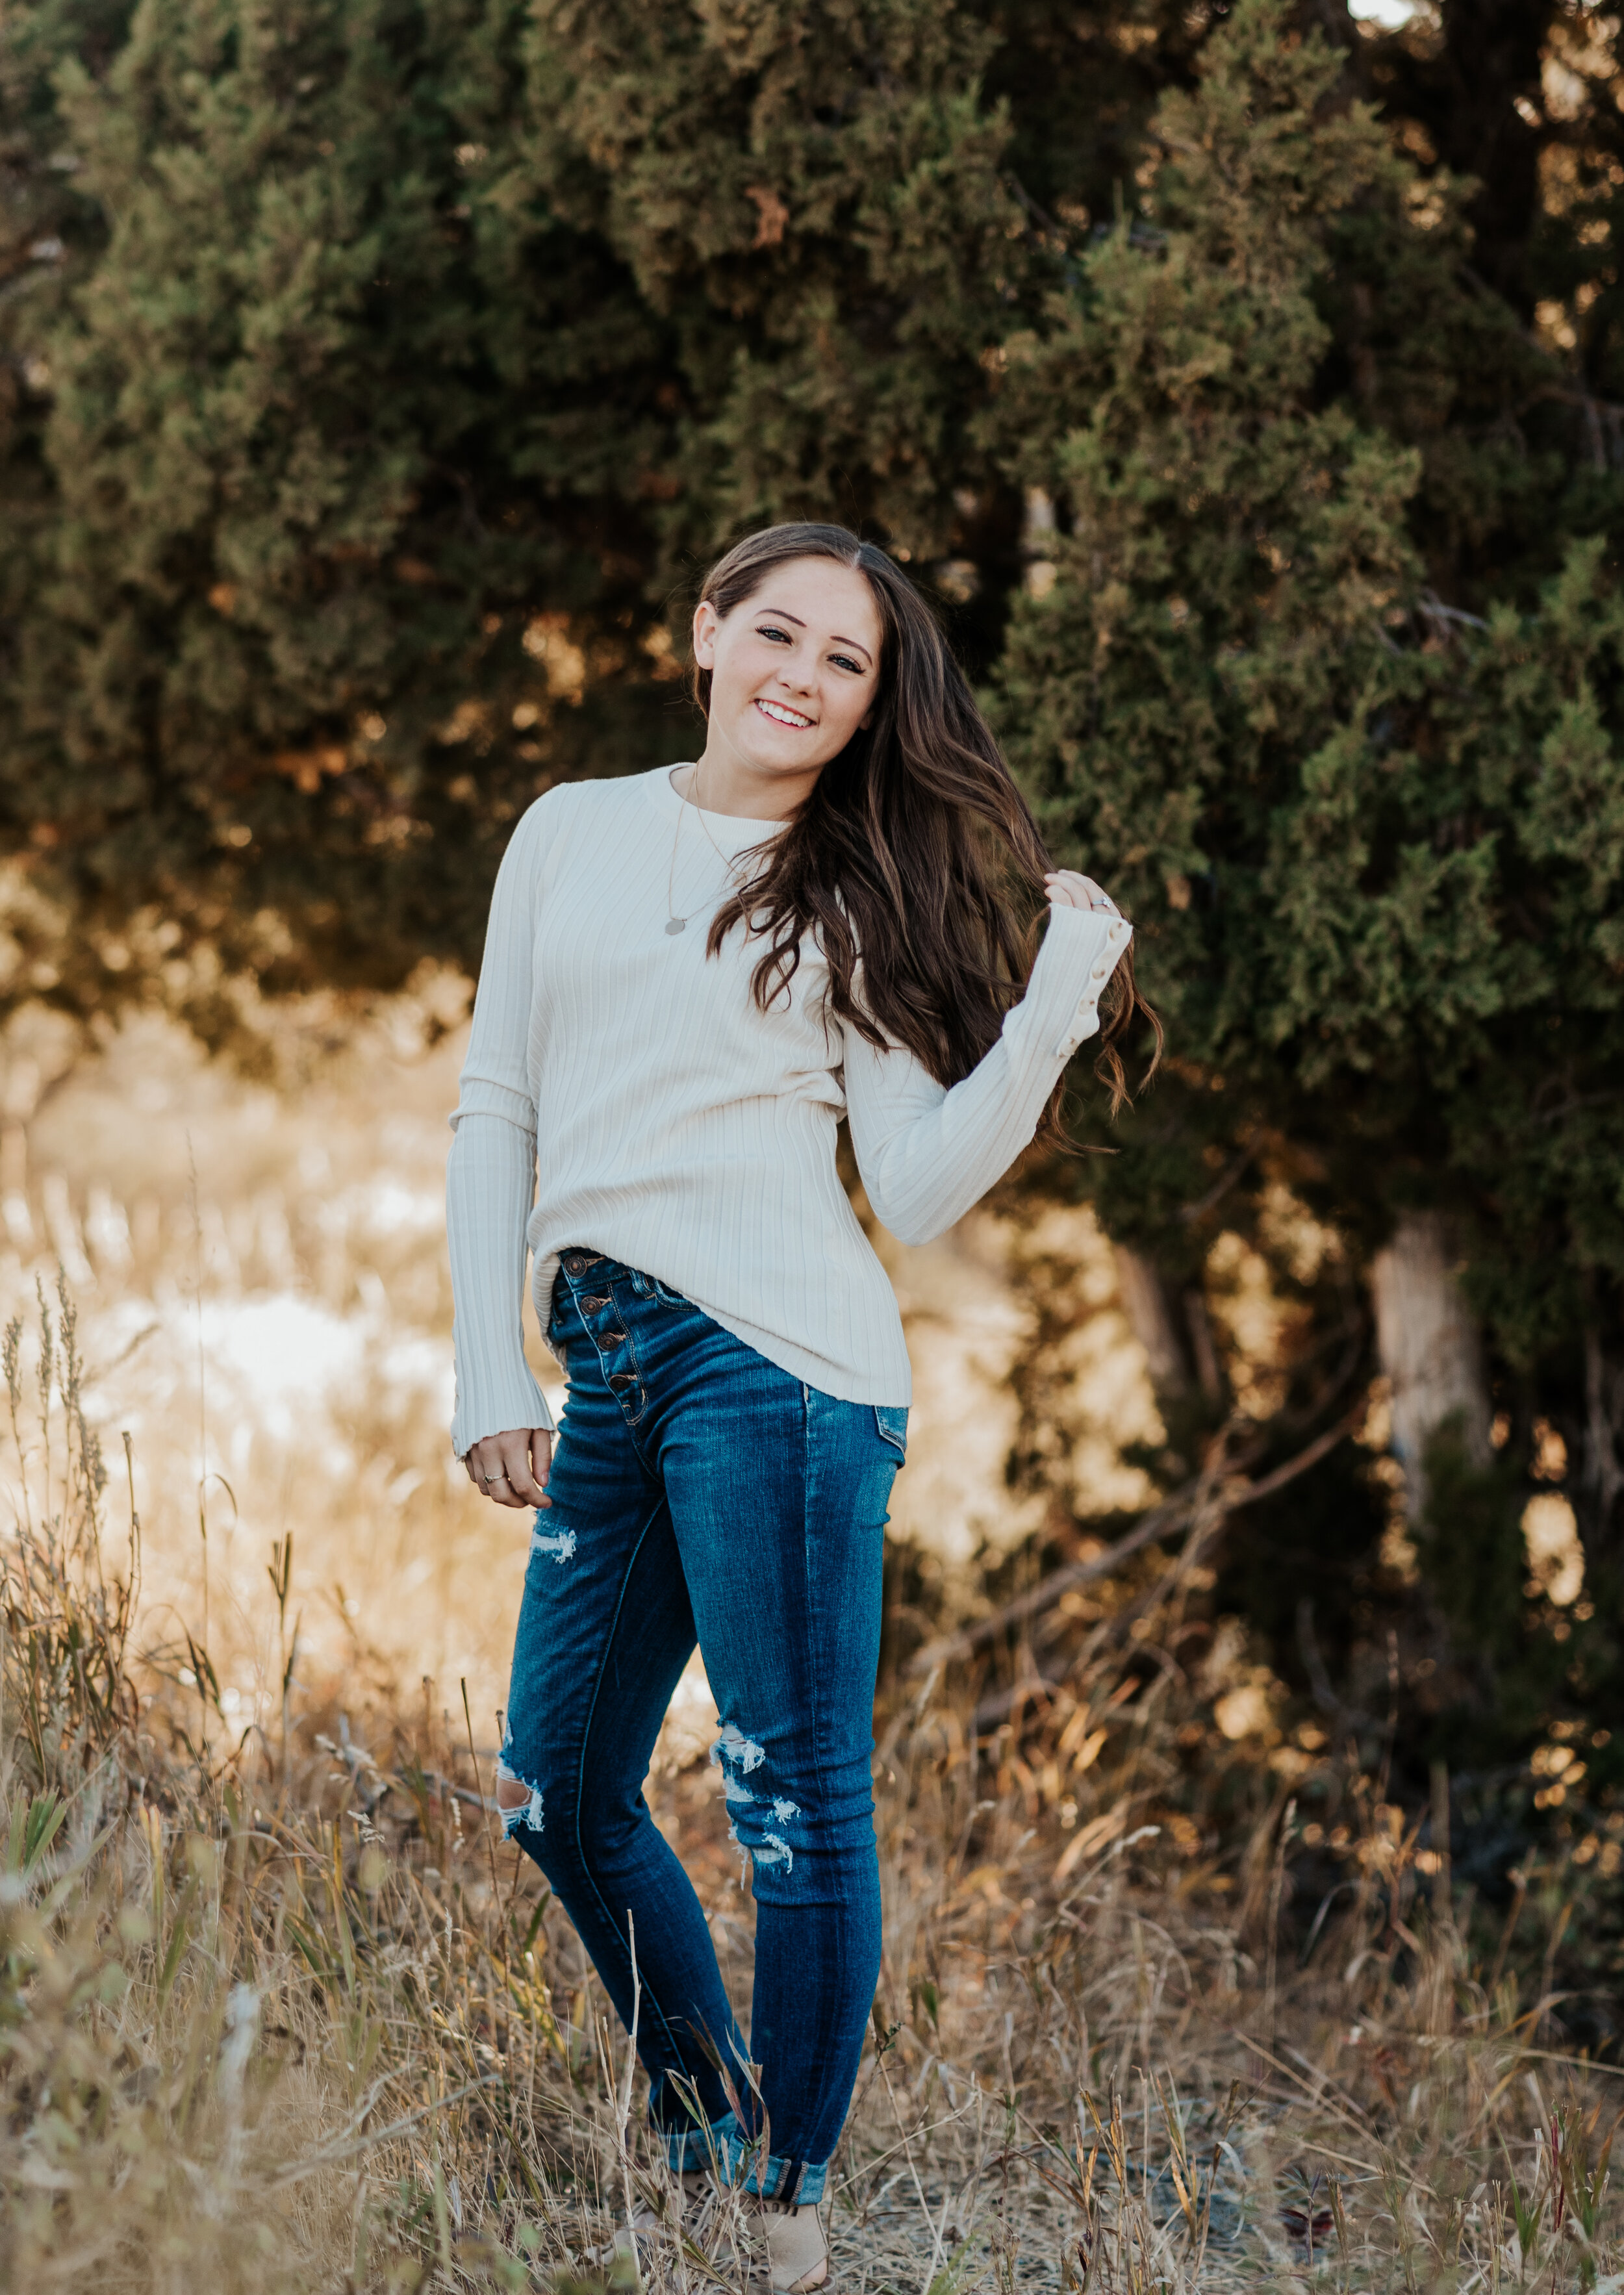 Girl rocking a white sweater and jeans in a field in the countryside of Cache Valley. professional photographers in utah cache valley senior photo poses logan utah photographers teen fashion senior pictures photo session outfit inspiration casual senior picture outfits senior in high school graduating class of 2020 #kristialysephotography #professionalphotographersinutah #utahphotographers #seniorportraits #cachevalley #loganutah #casualseniorpictureoutfits #teenfashion #senior #classof2020